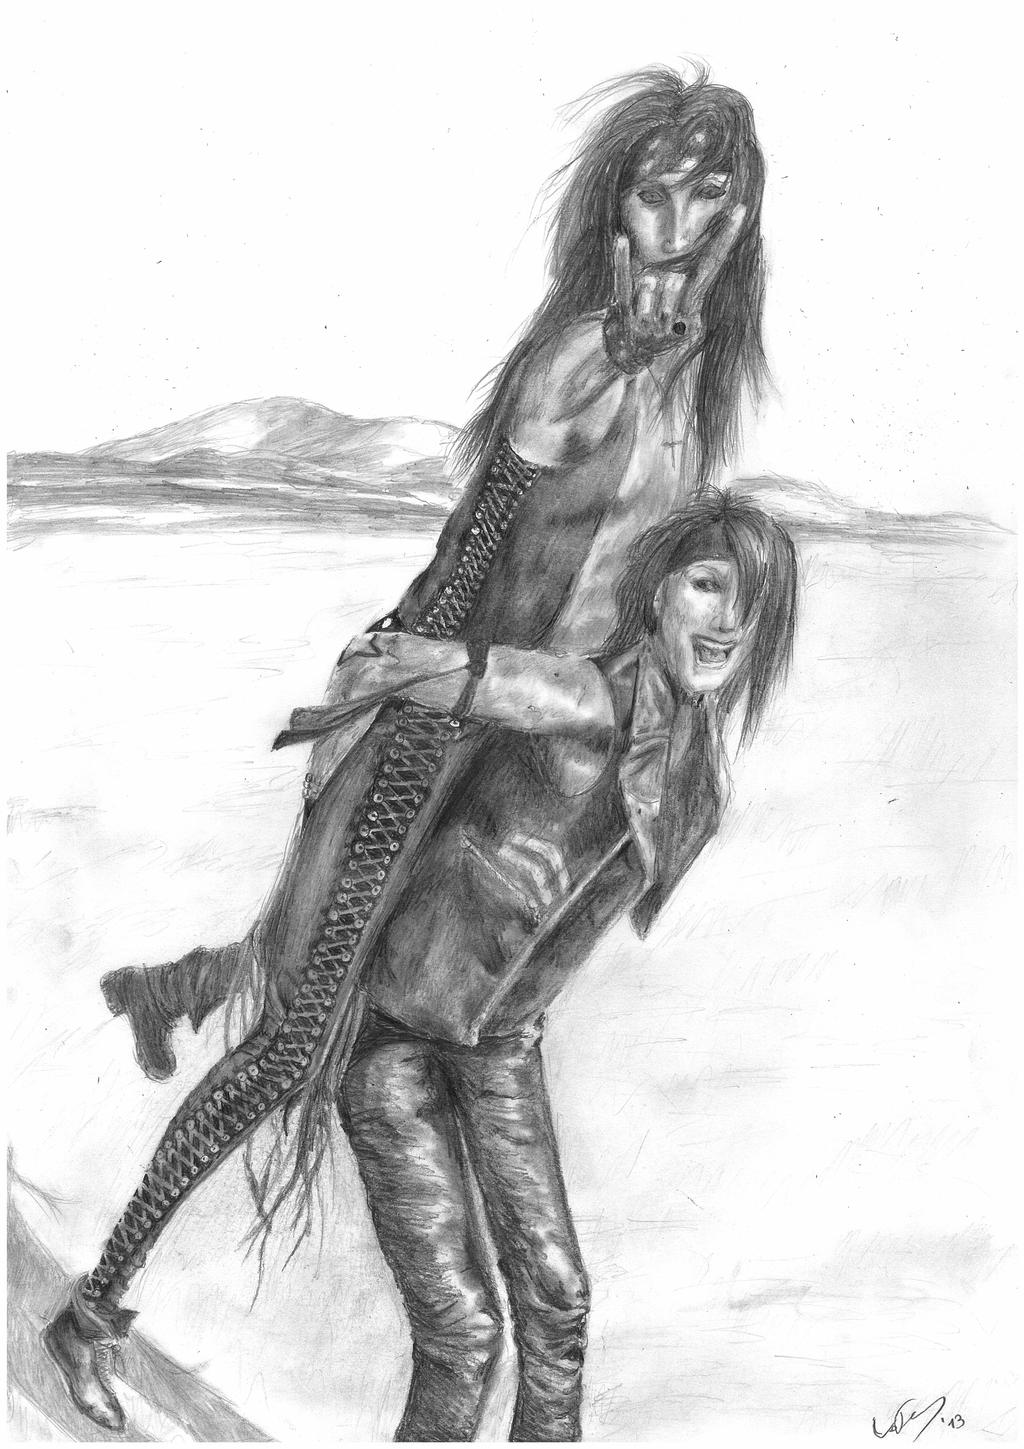 Ashley Purdy and Christian Coma by Monsterflosse on DeviantArt